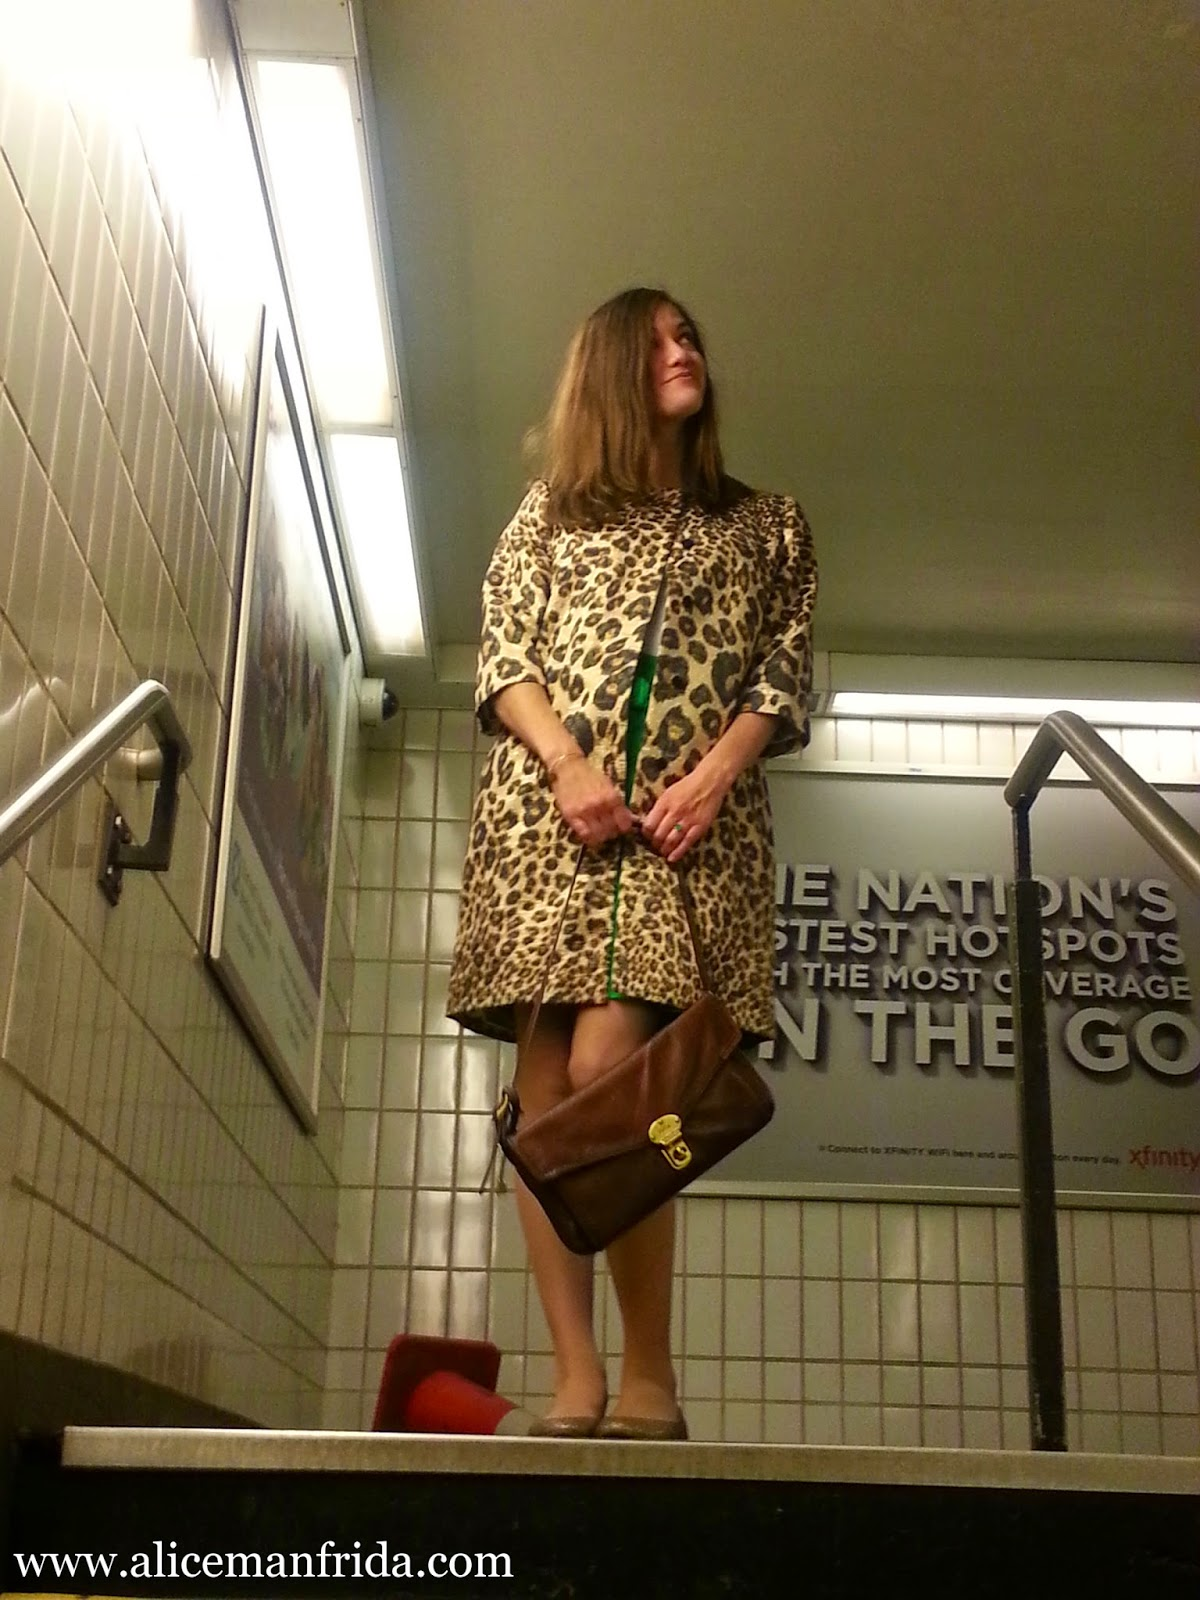 A woman standing in a subway station wearing a leopard statement coat and holding a brown leather handbag from Fossil